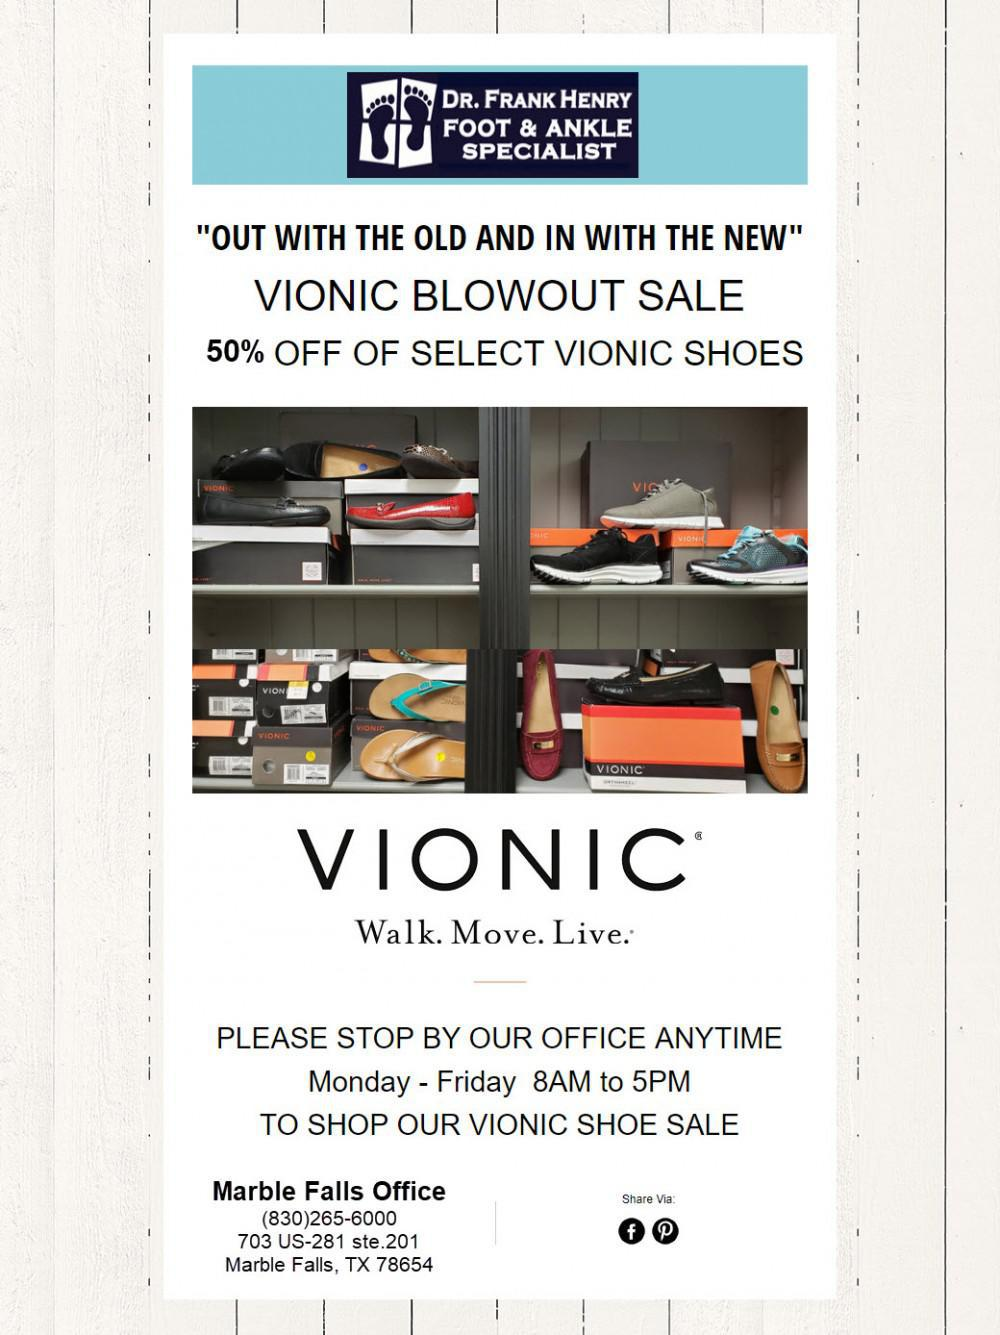 50% OFF VIONIC SHOE SALE